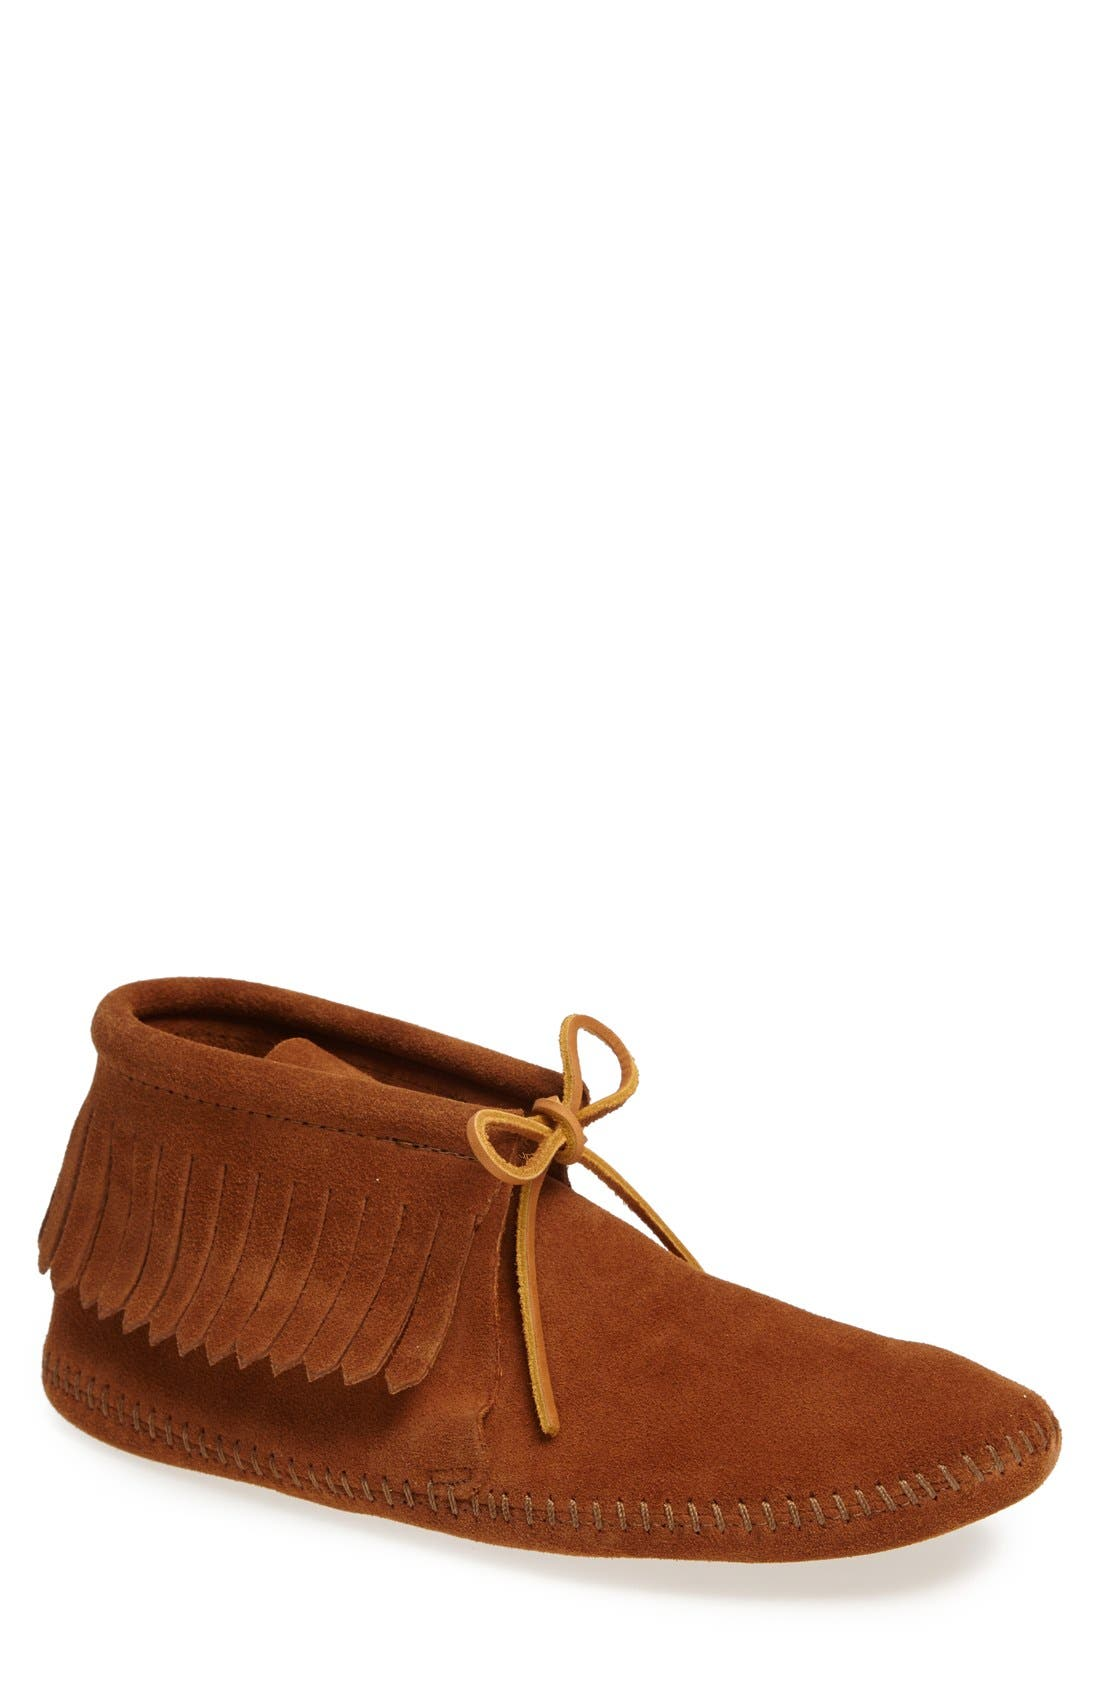 Fringe Boot,                         Main,                         color, Brown